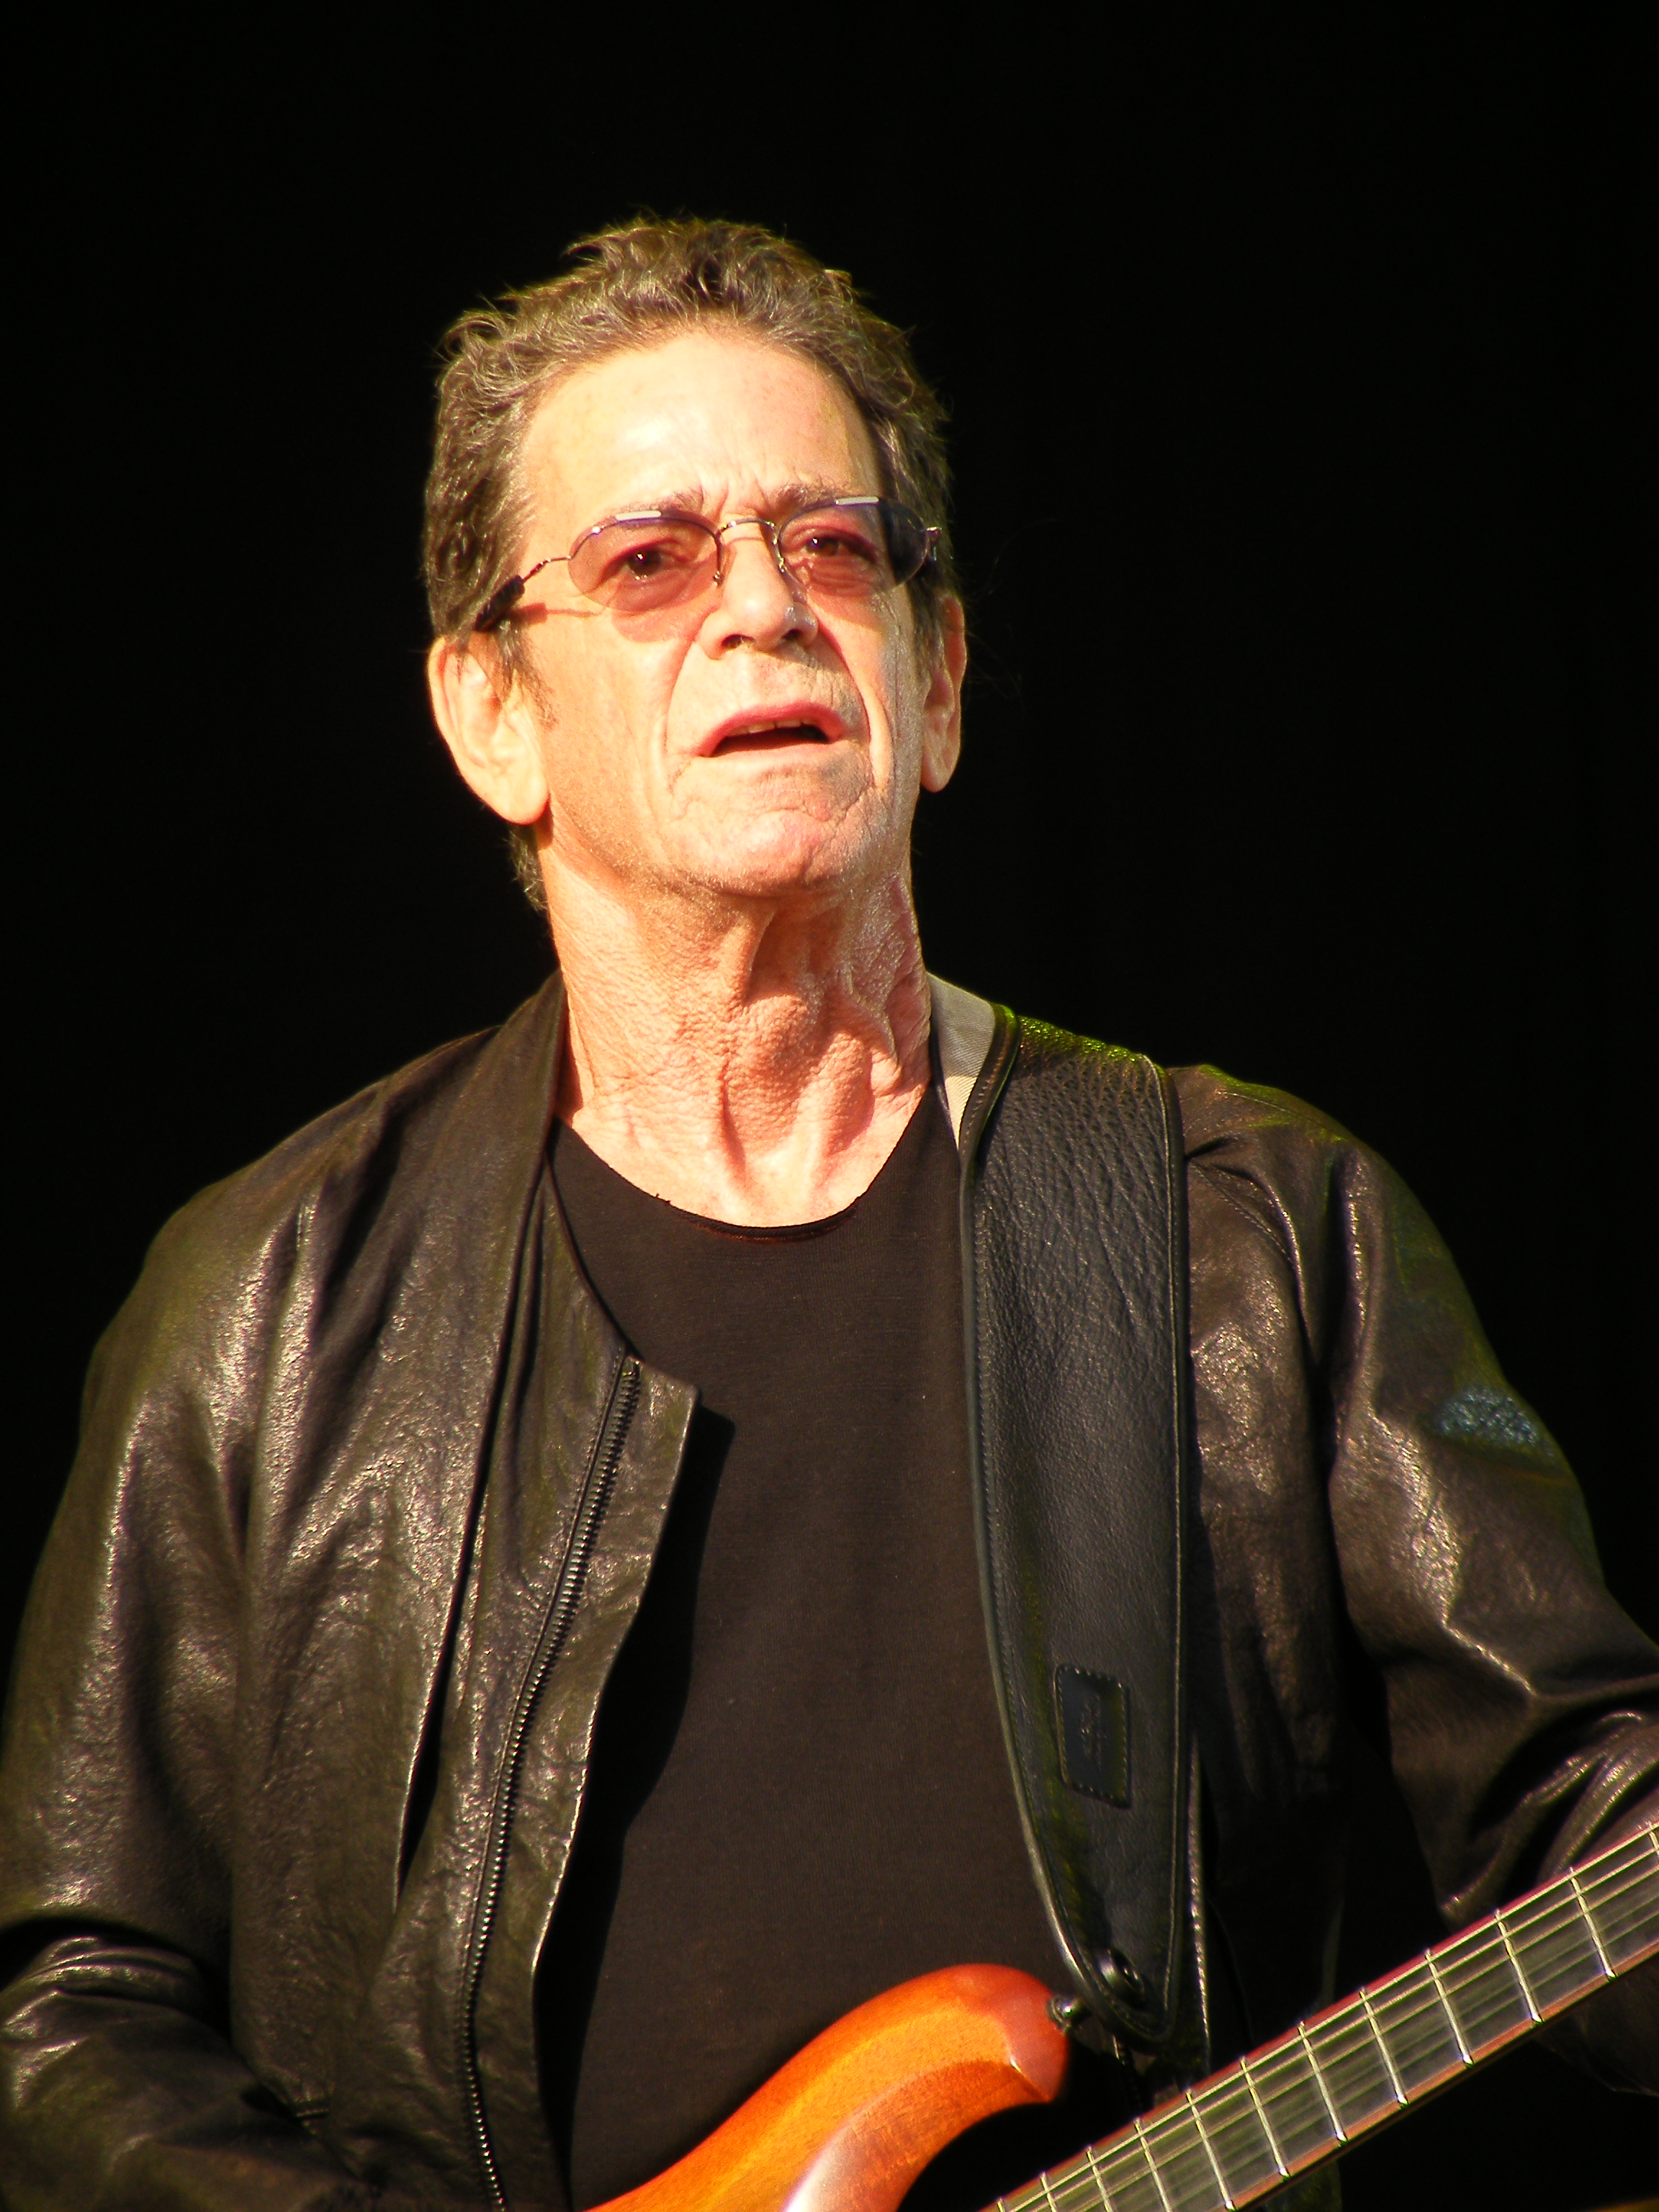 Image of Lou Reed from Wikidata